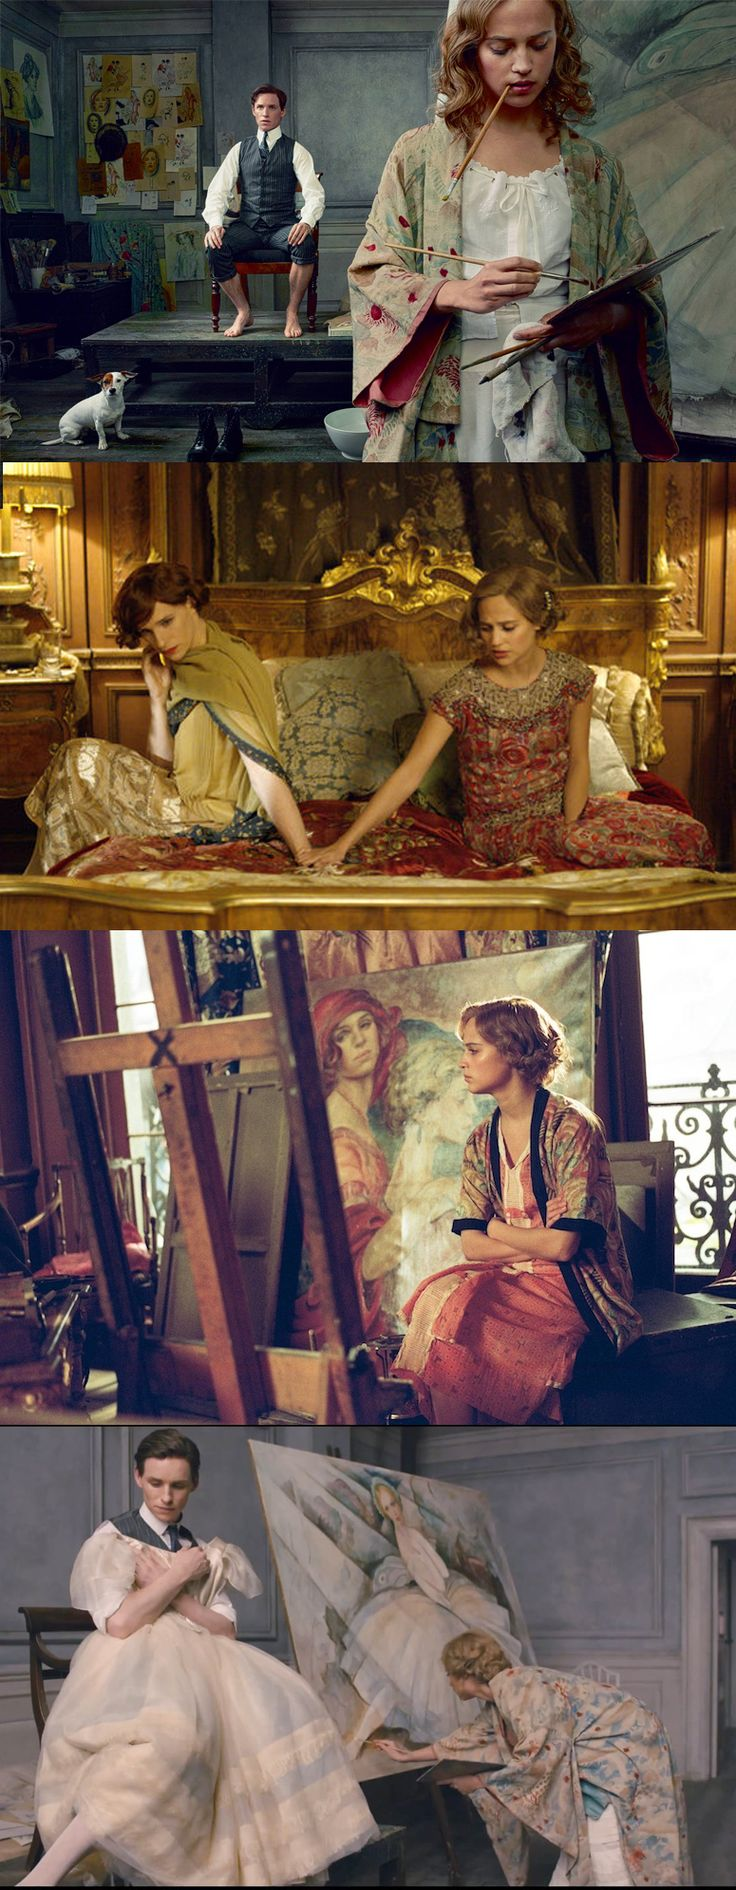 Eddie Redmayne and Alicia Vikander in The Danish Girl (2015). Costume Designer: Paco Delgado